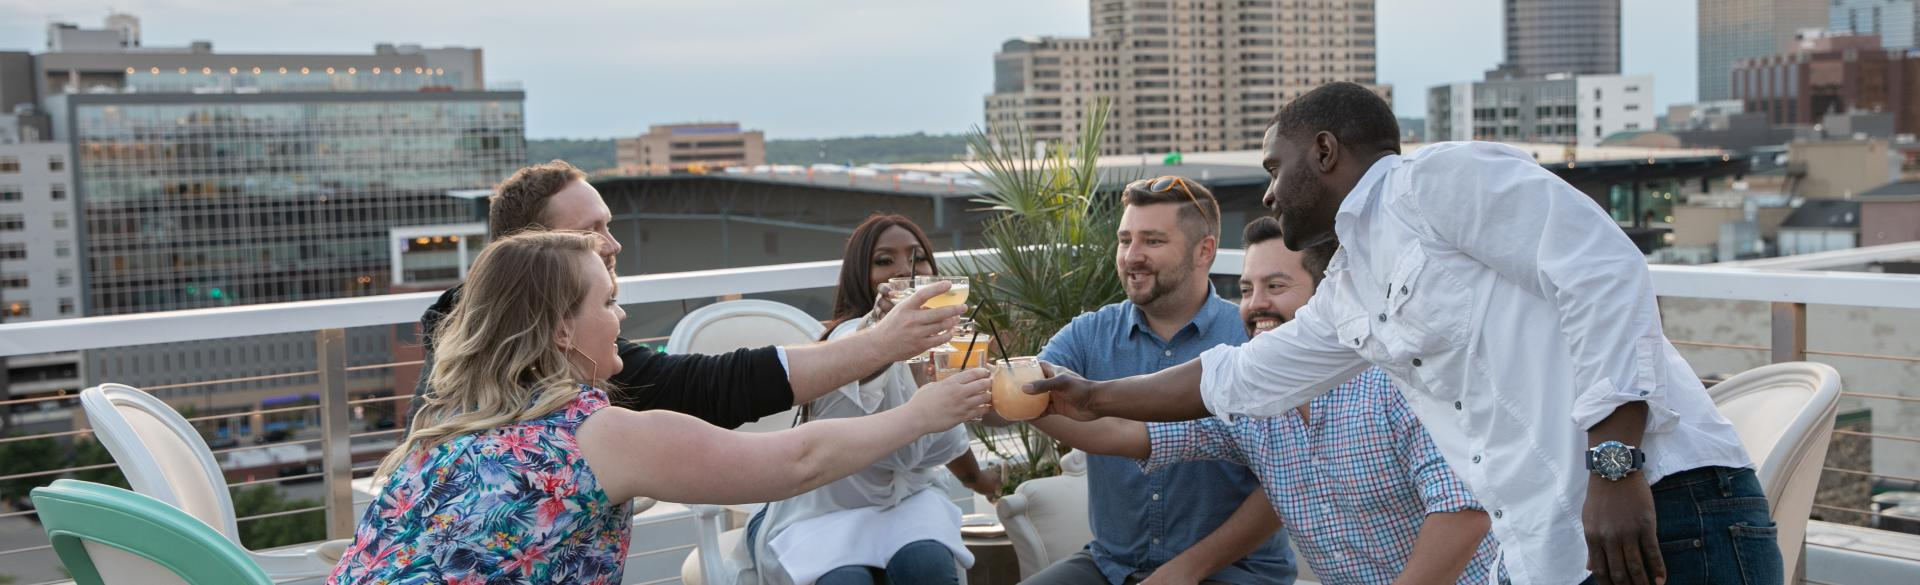 Friends enjoying cocktails and cheers-ing on rooftop